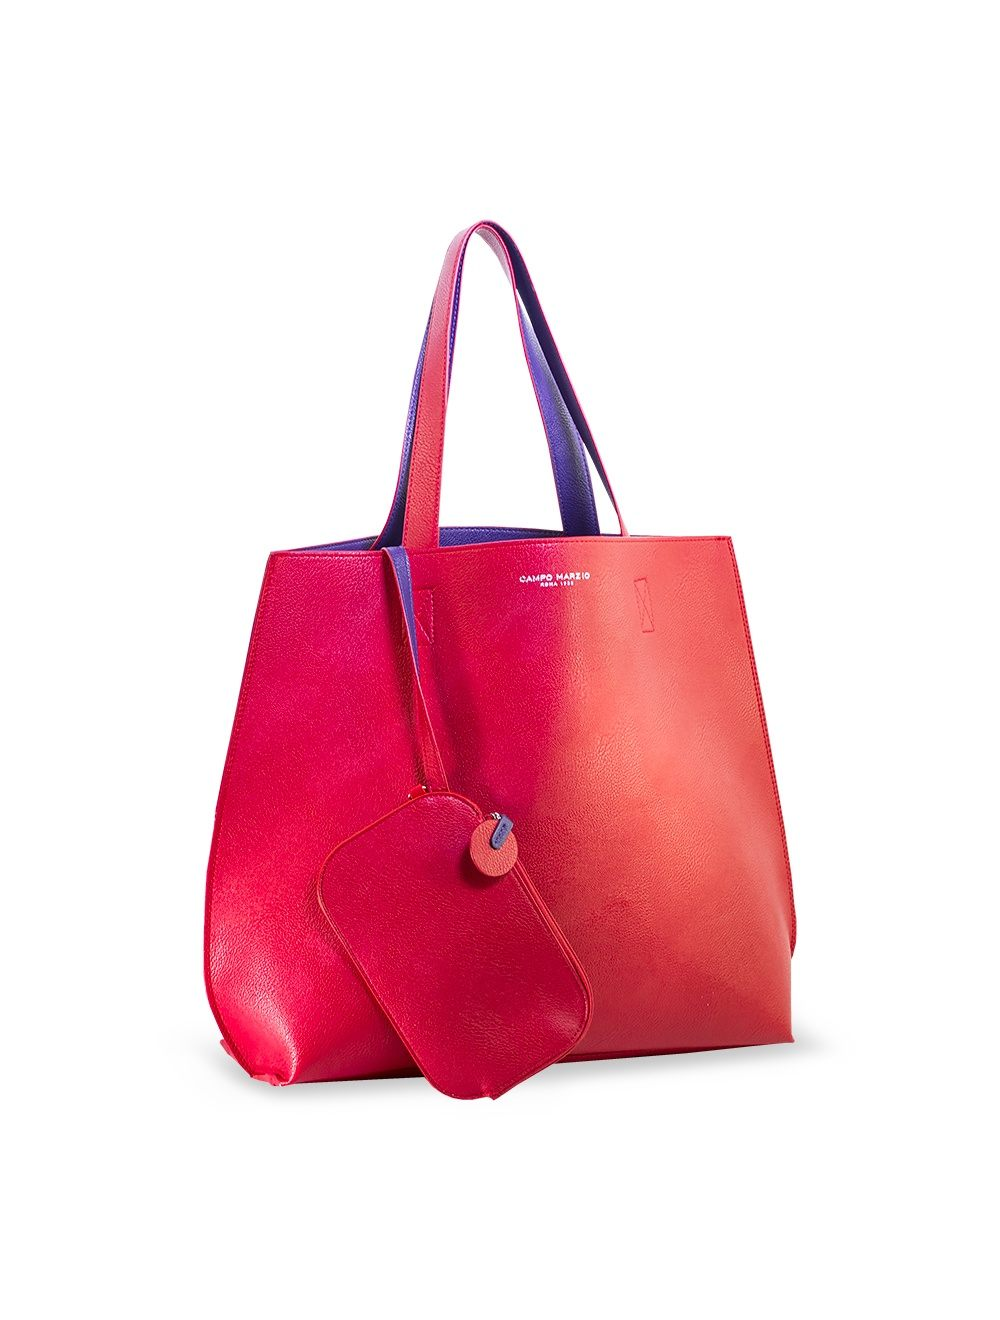 Colour Spring Tote Bag - Cherry Red